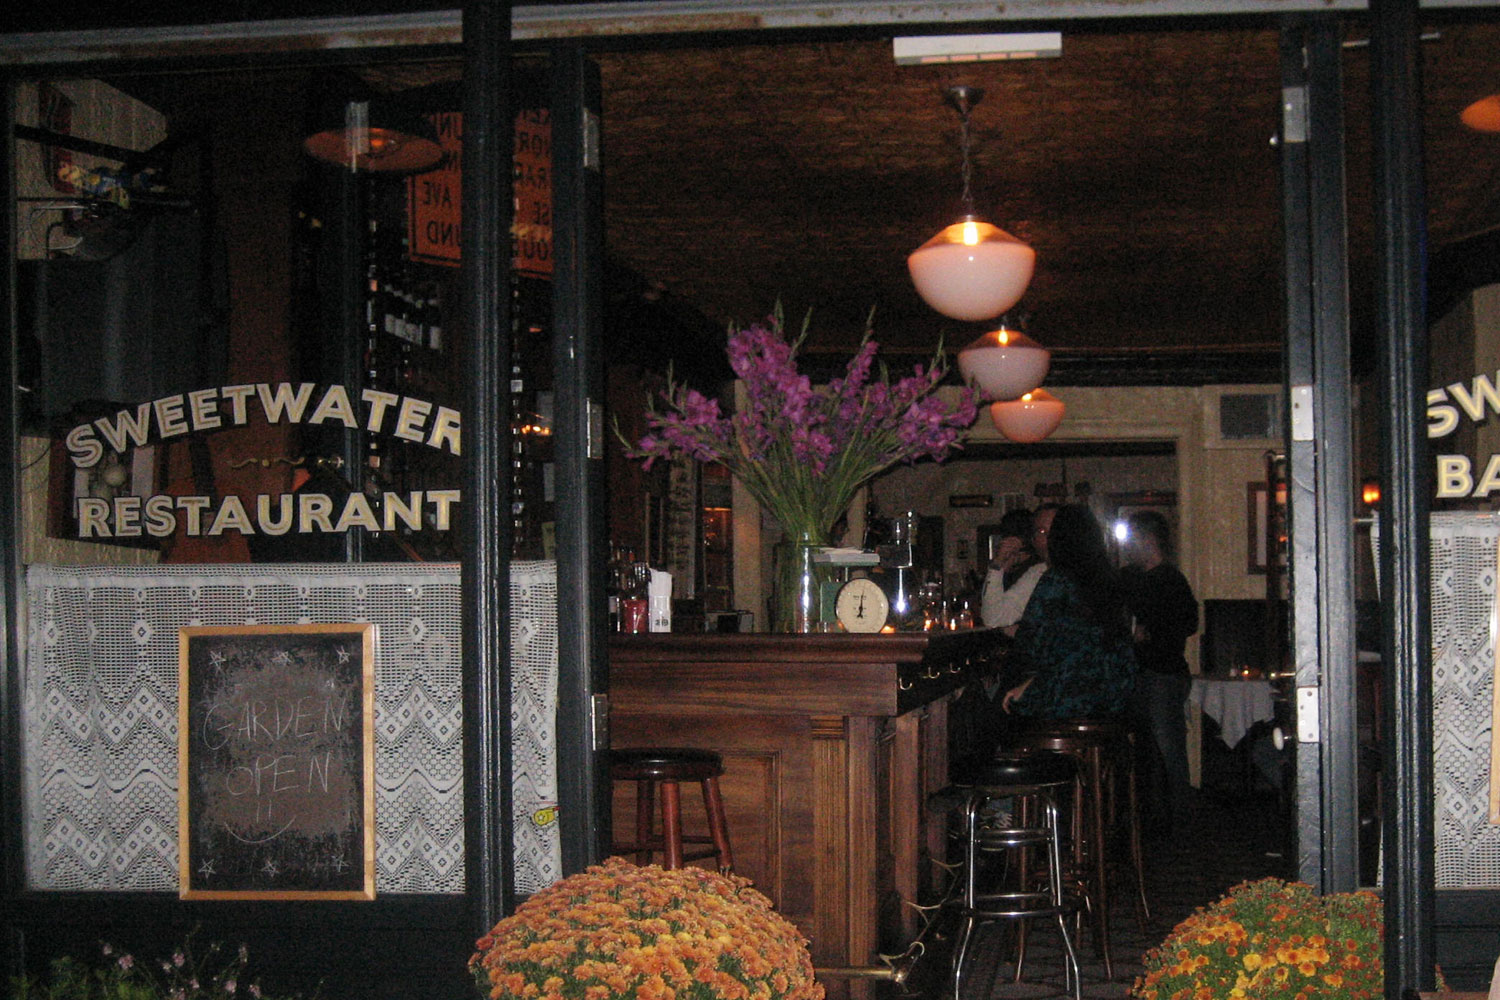 Sweetwater - One of the Best American Restaurants in